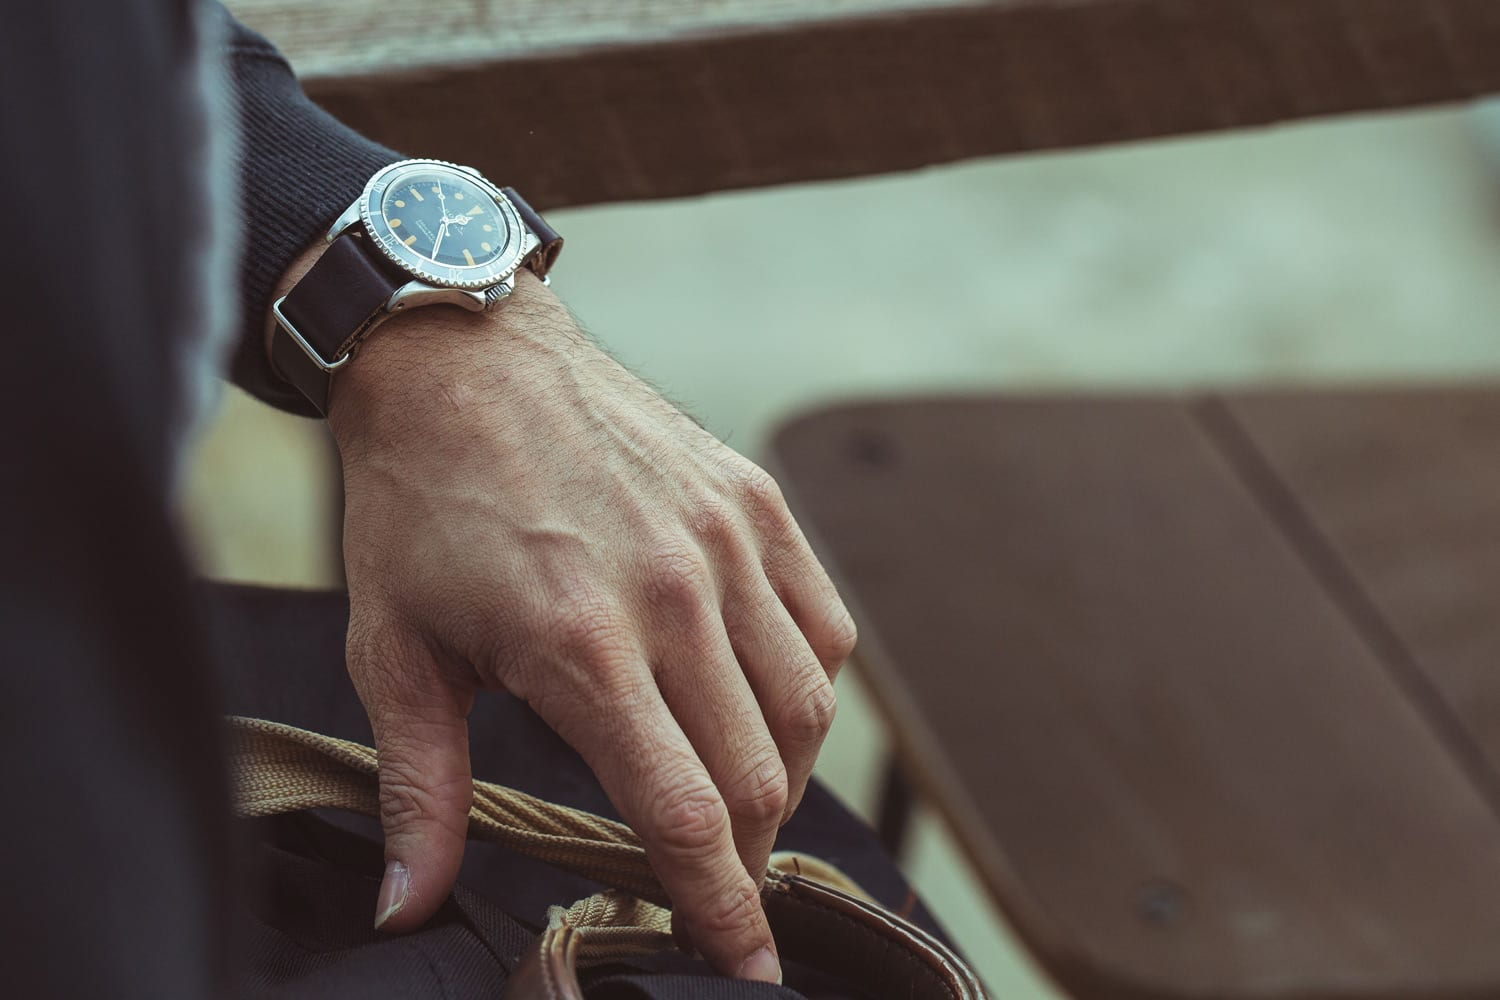 10 Oris Watches for Every Budget